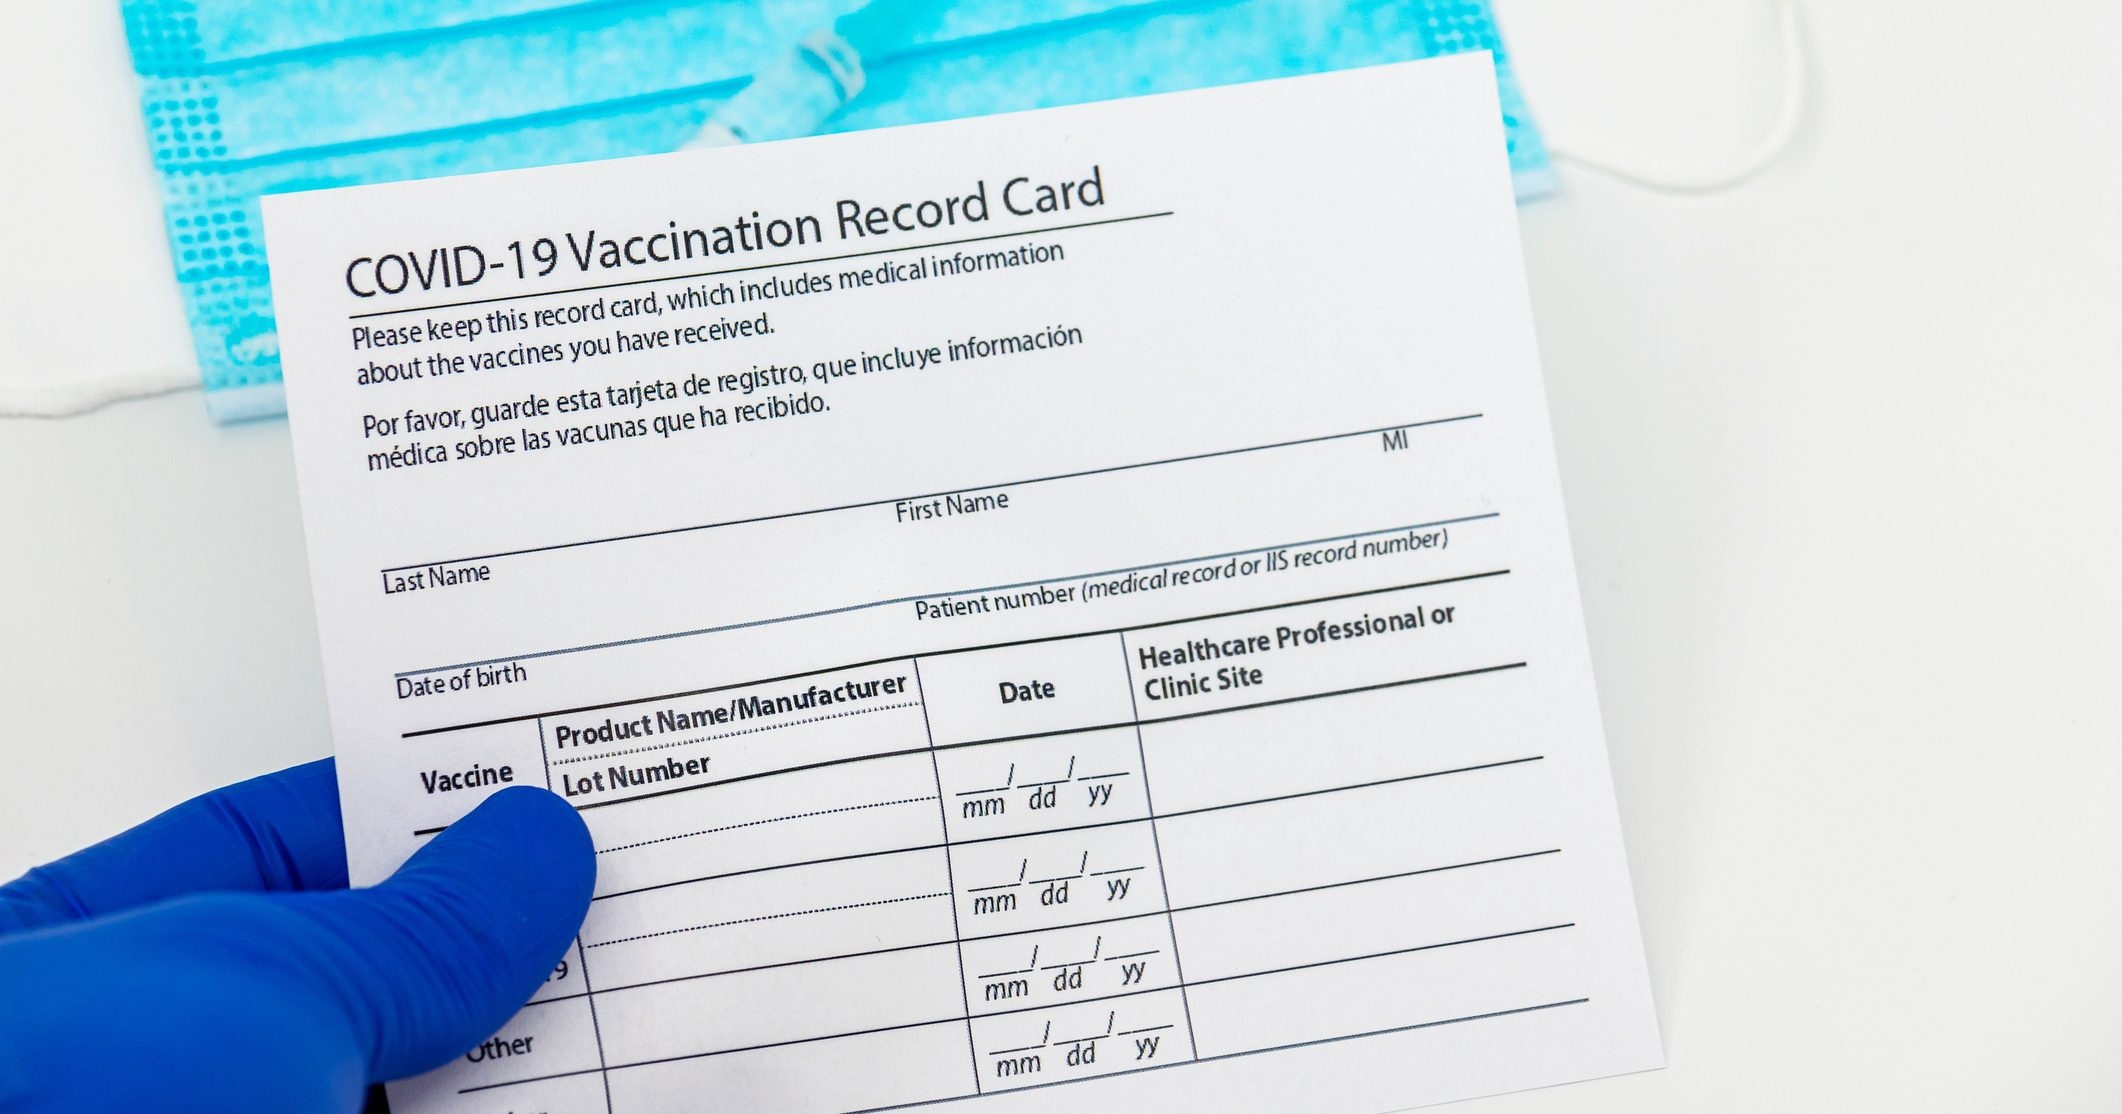 You may be jubilant after receiving the COVID-19 vaccine -- but don't post your vaccination card on social media sites. (File/Getty)